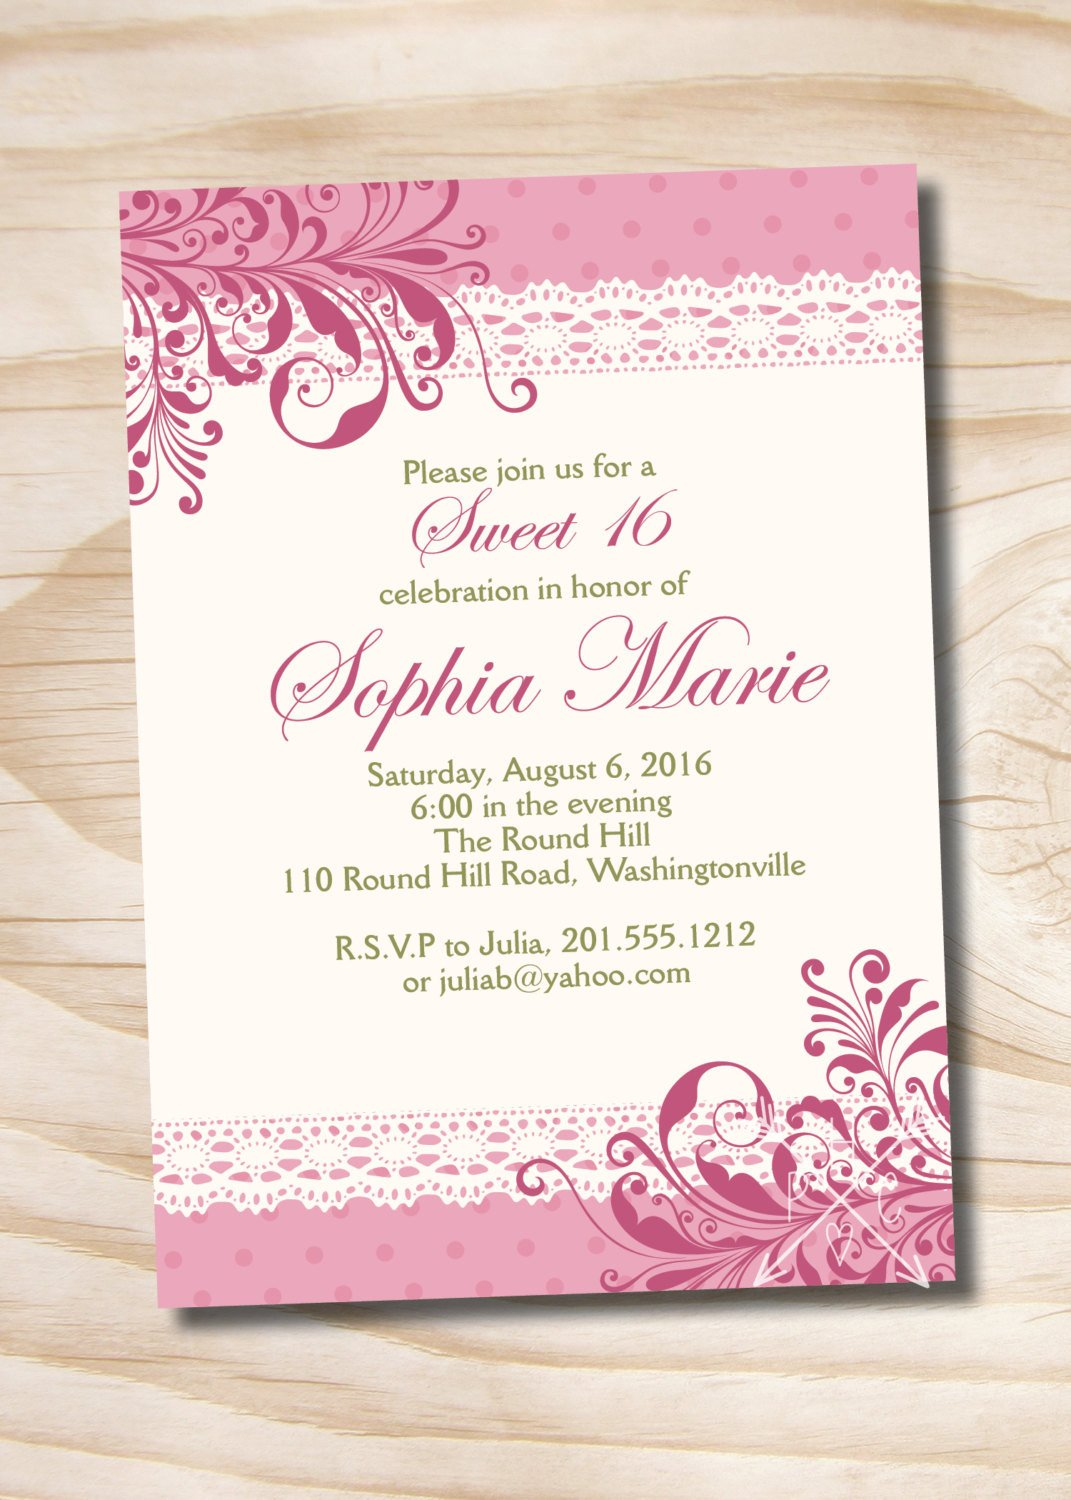 Free Quinceanera Invitation Templates Shabby Chic Sweet 16 Birthday Quinceanera Invitation